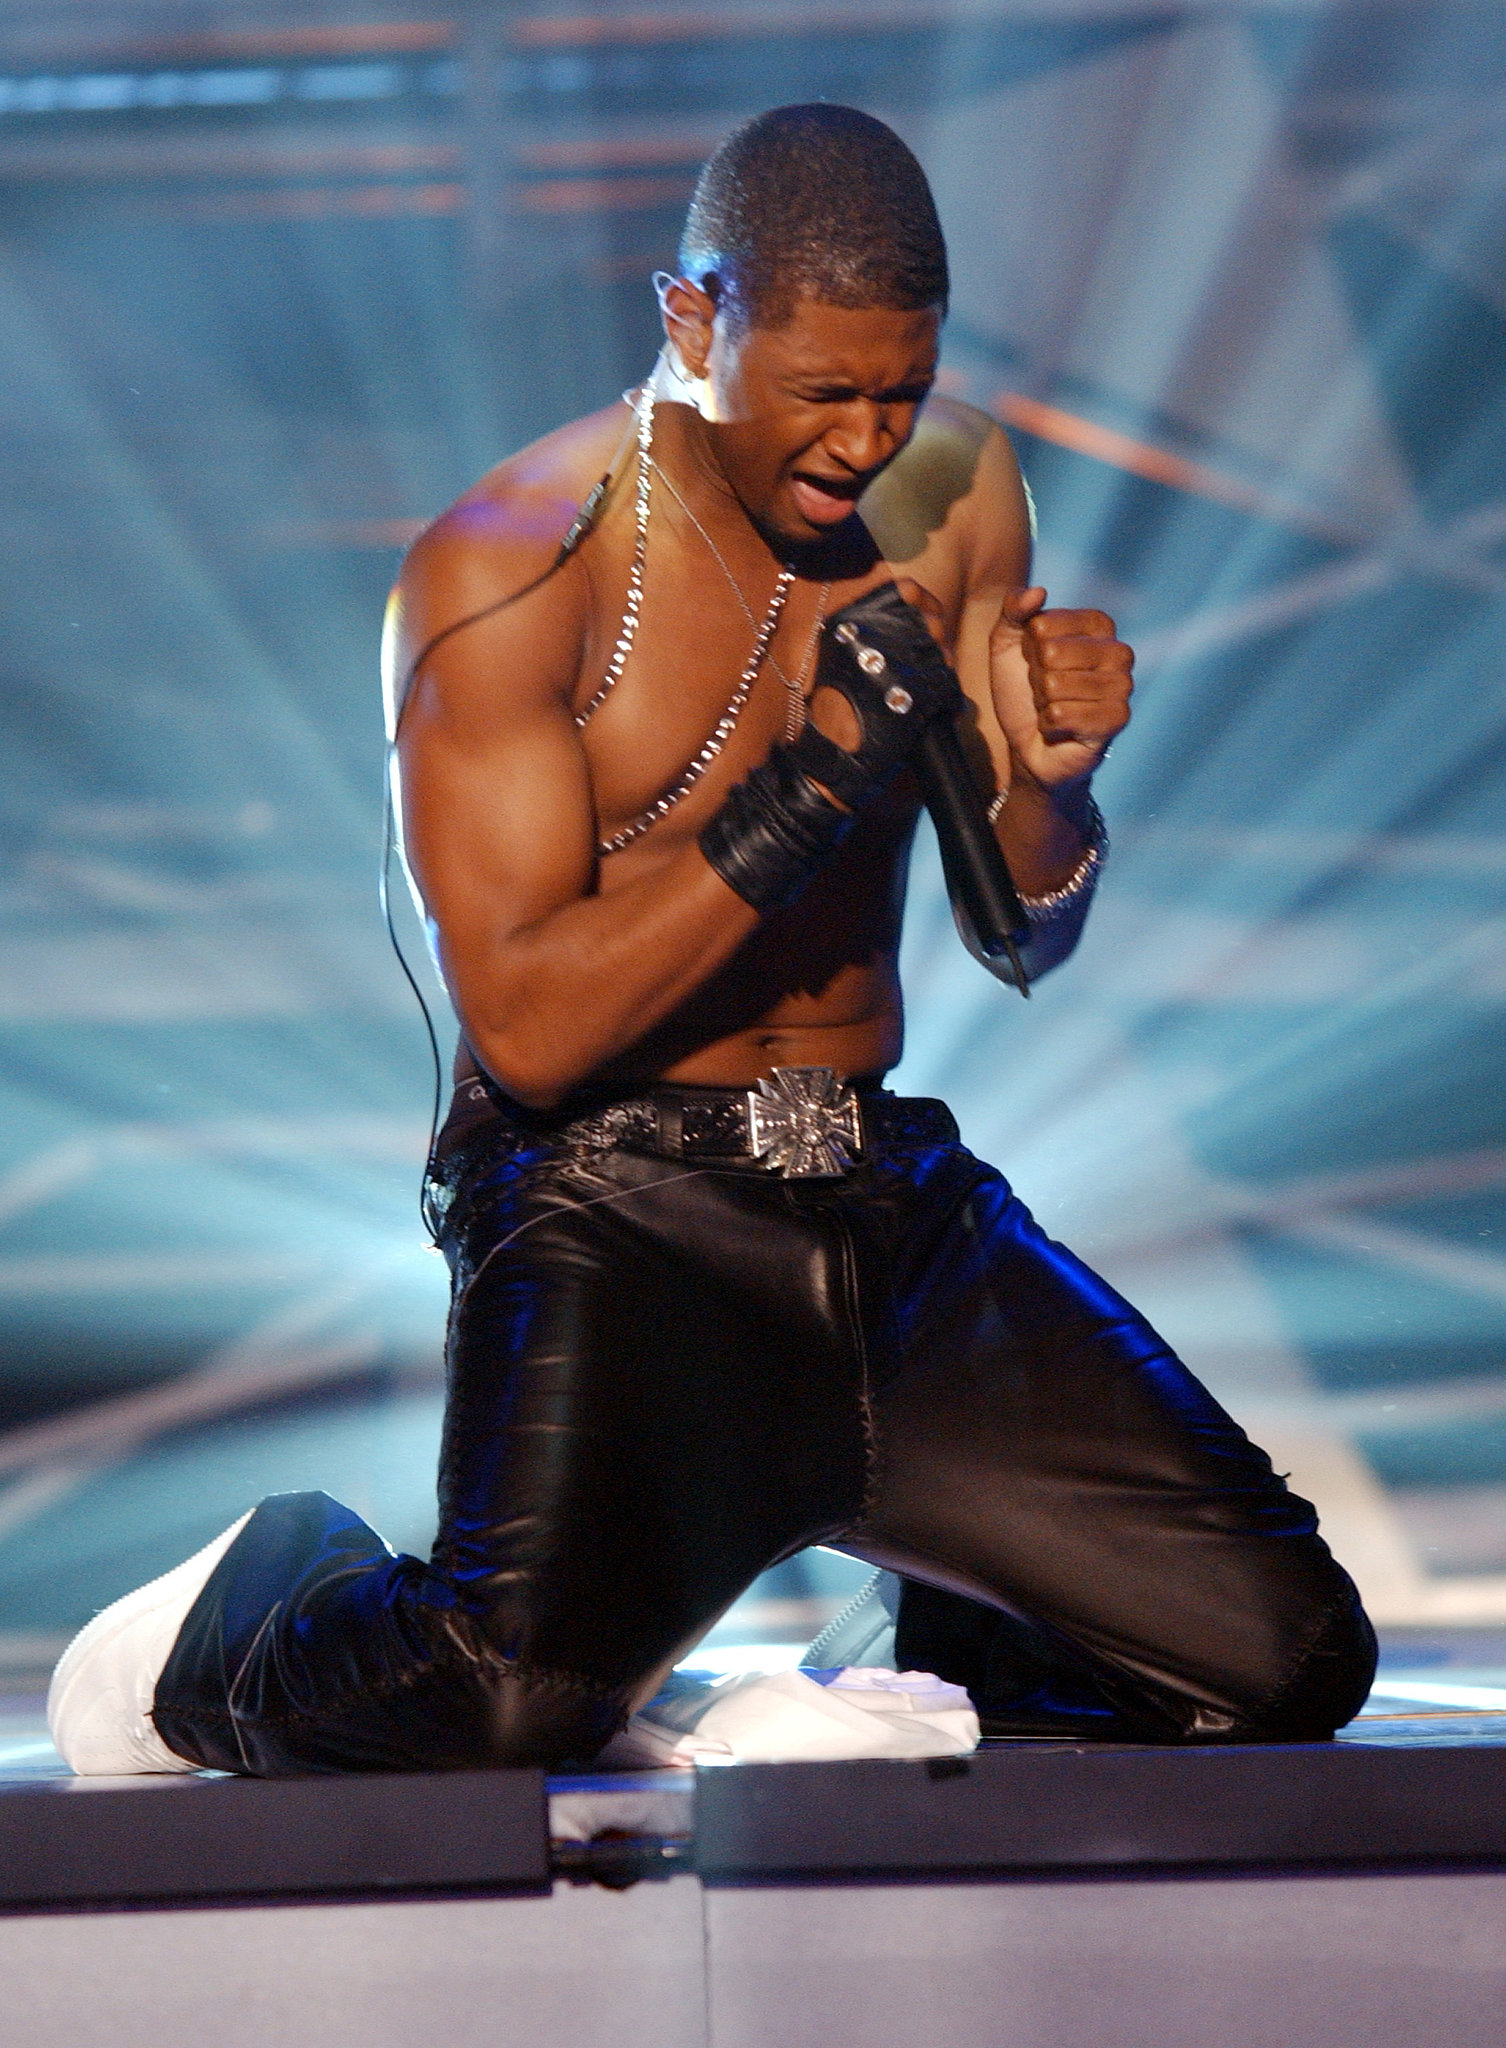 Usher performed shirtless in 200